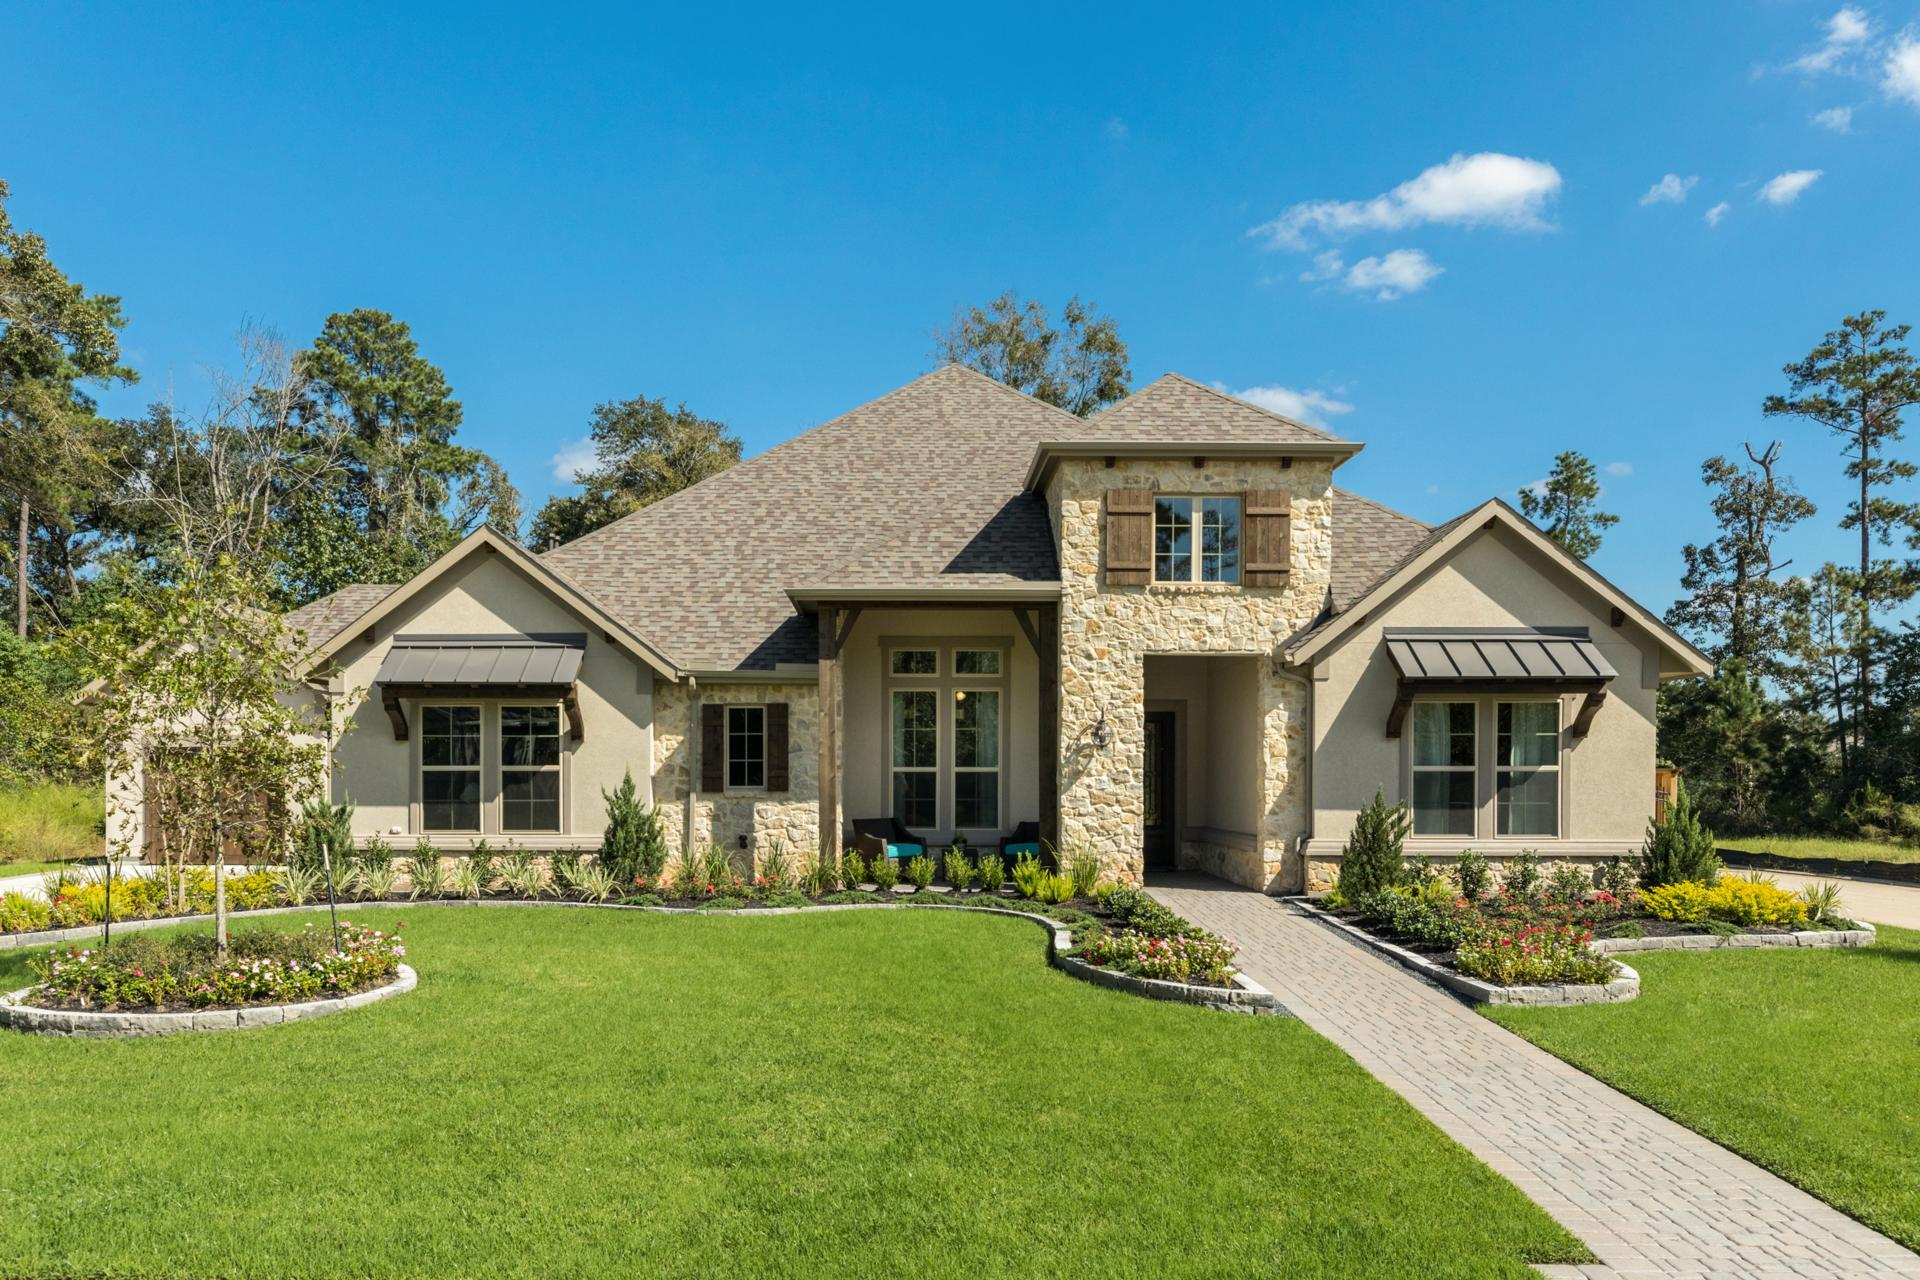 Single Family for Active at Sorenna 10919 Dew Meadows Court Cypress, Texas 77433 United States